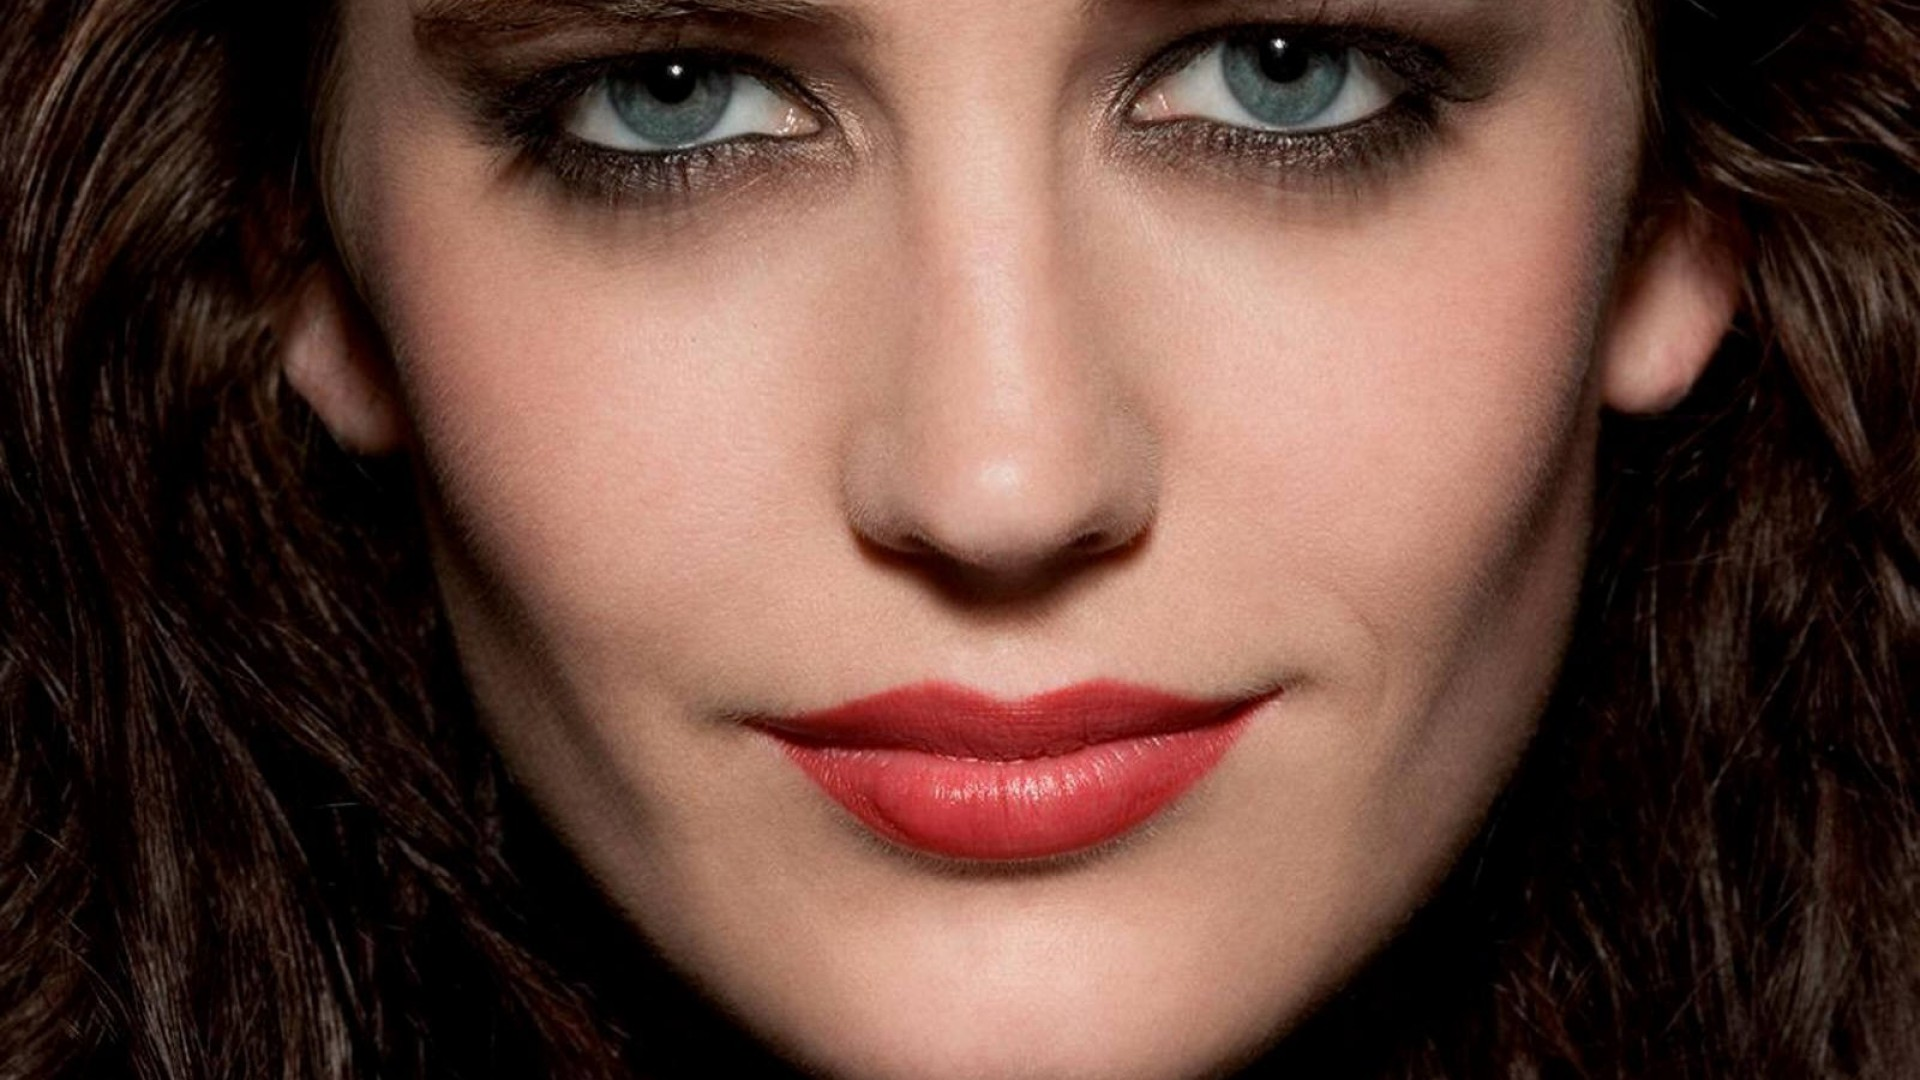 Penny dreadful and Eva green wallpaper